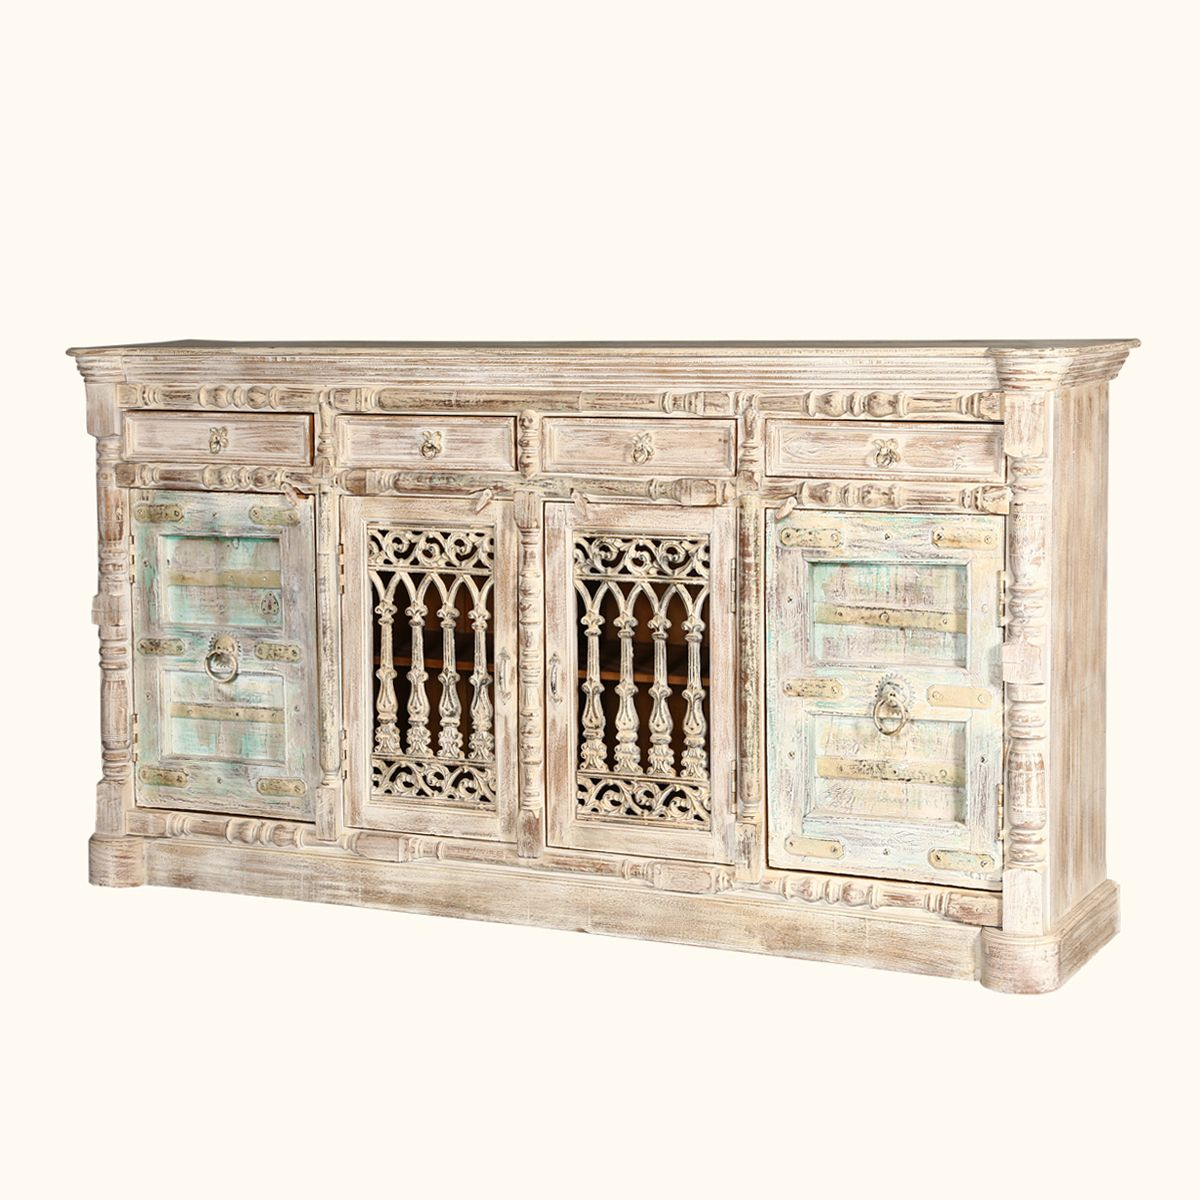 Palazzo 85 Cathedral Door Solid Wood 4 Drawer Rustic Buffet Sideboard Rustic Buffet Sideboard Buffet Rustic Cabinets